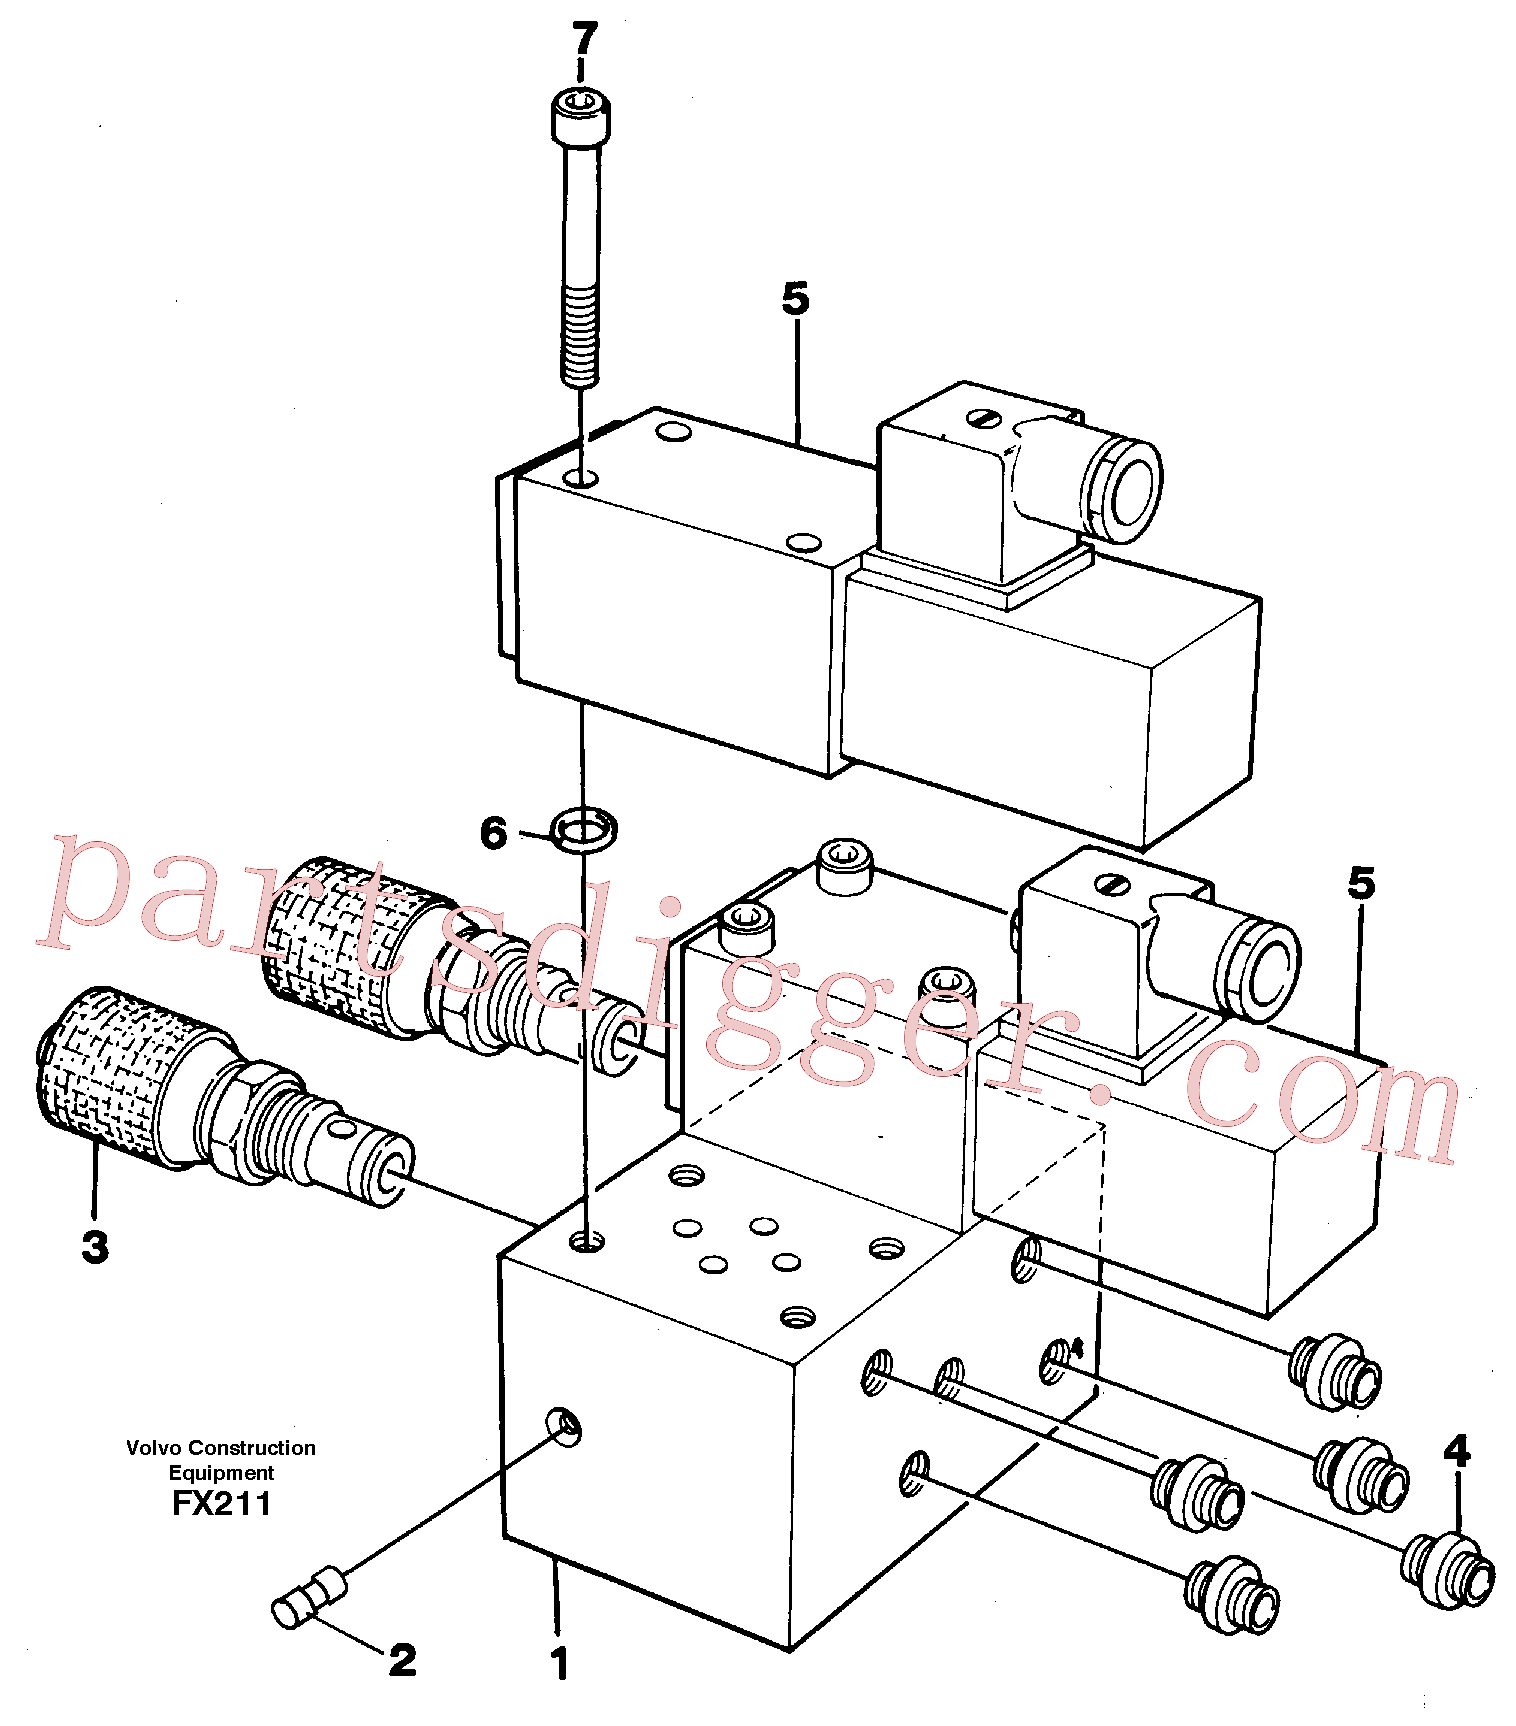 VOE14243114 for Volvo Control block for end position damp(FX211 assembly)